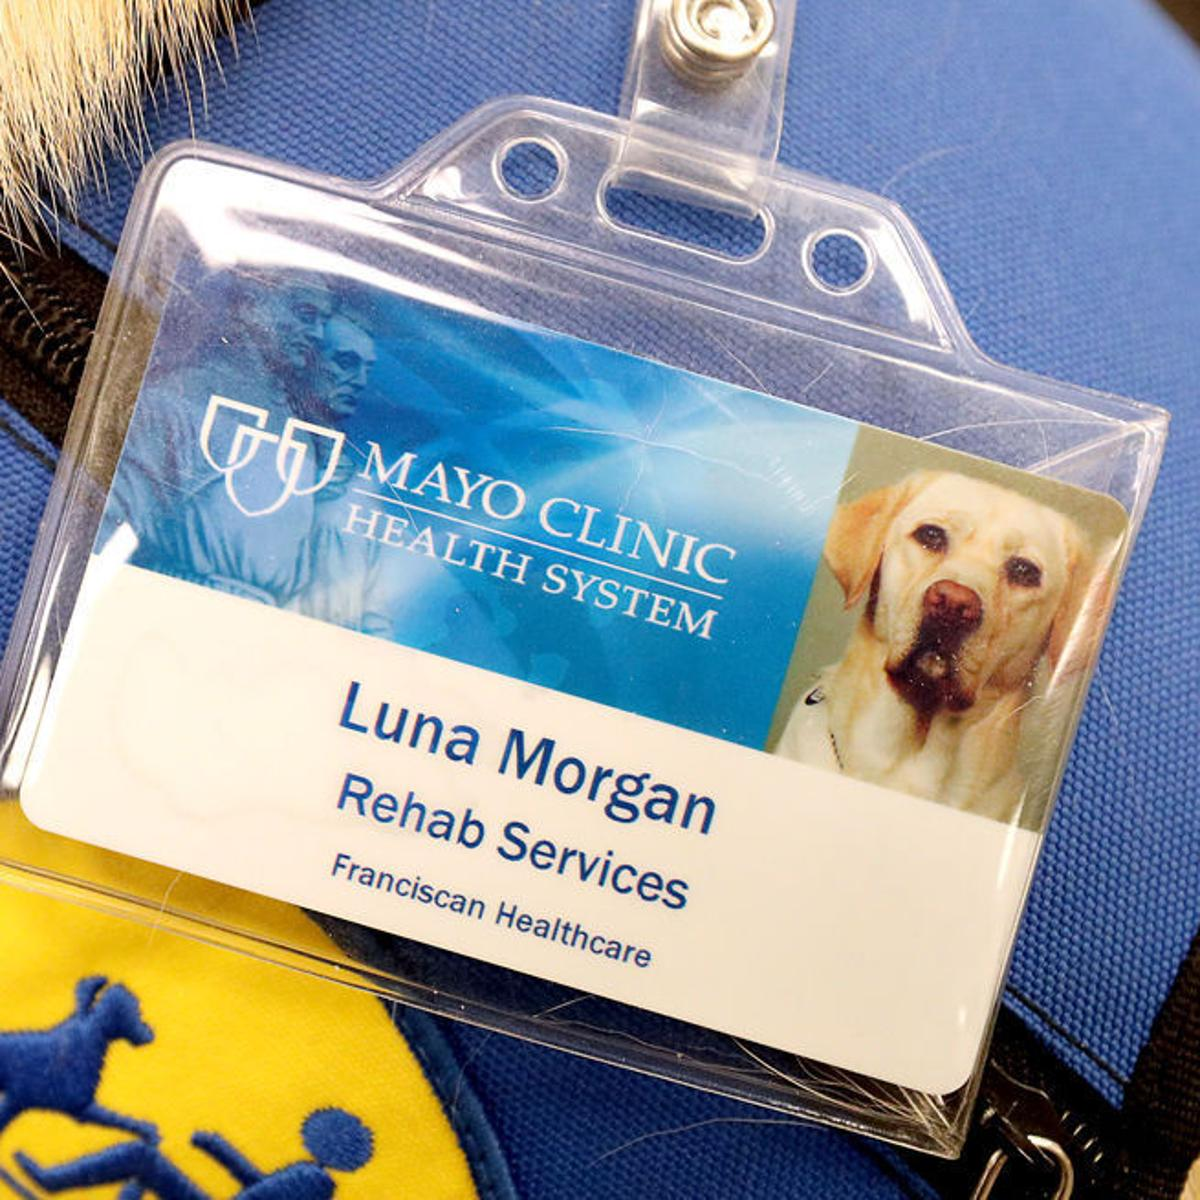 Luna the Lab offers her skills to Mayo Clinic patients in La